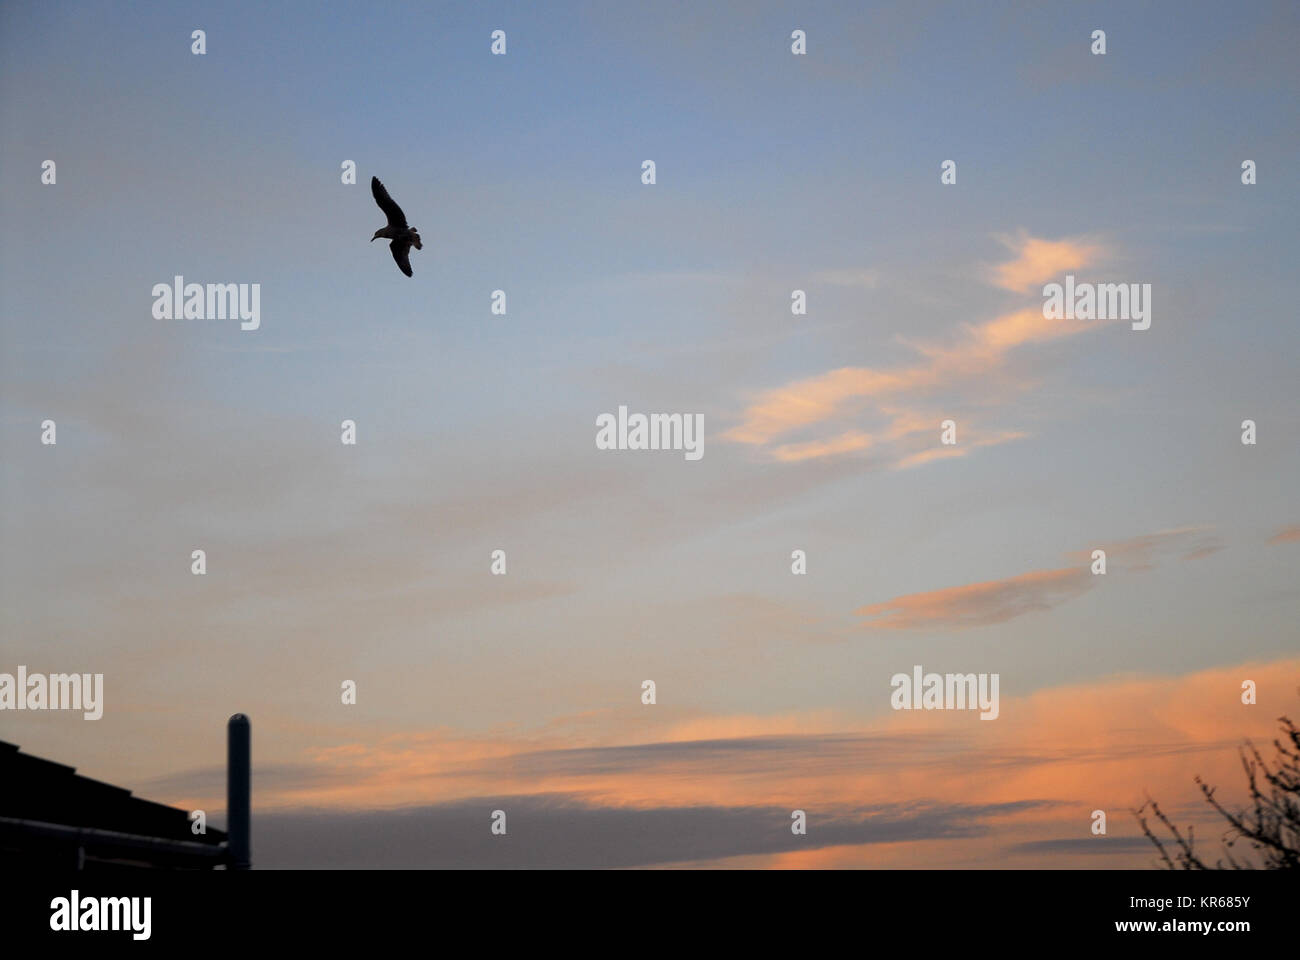 Portland, Dorset. 19th December 2017 - A seagull soars in front of candy-floss clouds in Fortuneswell, Isle of Portland - Stock Image